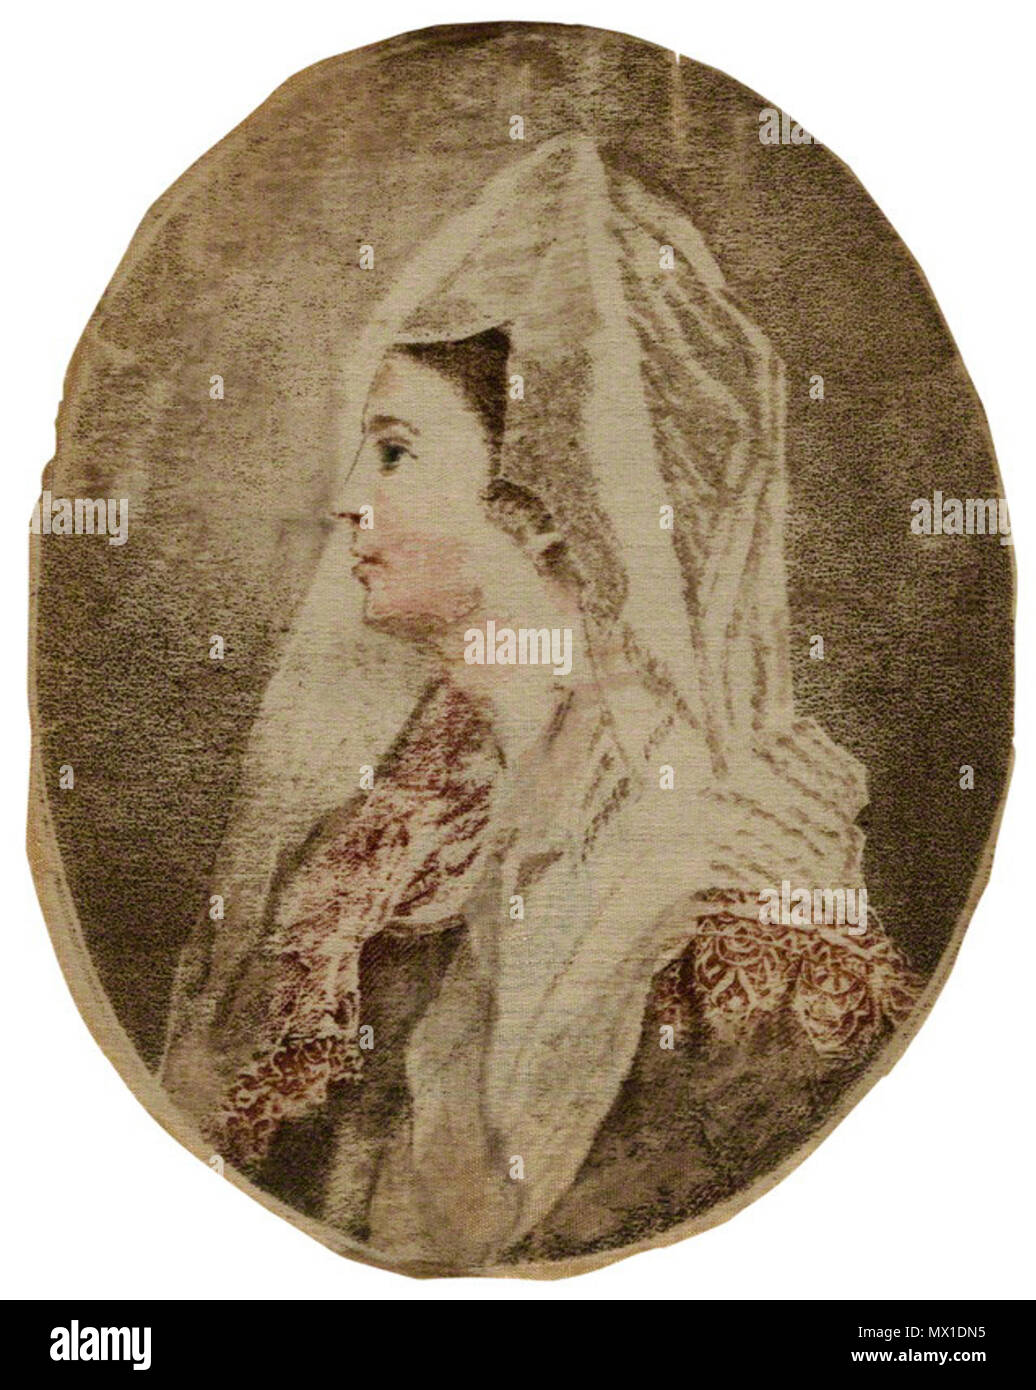 . English: Ann Cargill (née Brown) as Clara in 'The Duenna' probably published by J. Walker, after Matthew William Peters hand-coloured stipple engraving on silk, 1780? 3 7/8 in. x 3 1/8 in. (100 mm x 79 mm) paper size Purchased, 1966 Reference Collection NPG D21566 . 14 December 2013, 15:07:45. probably published by J. Walker, after Matthew William Peters 47 Ann cargill mw114486 - Stock Image